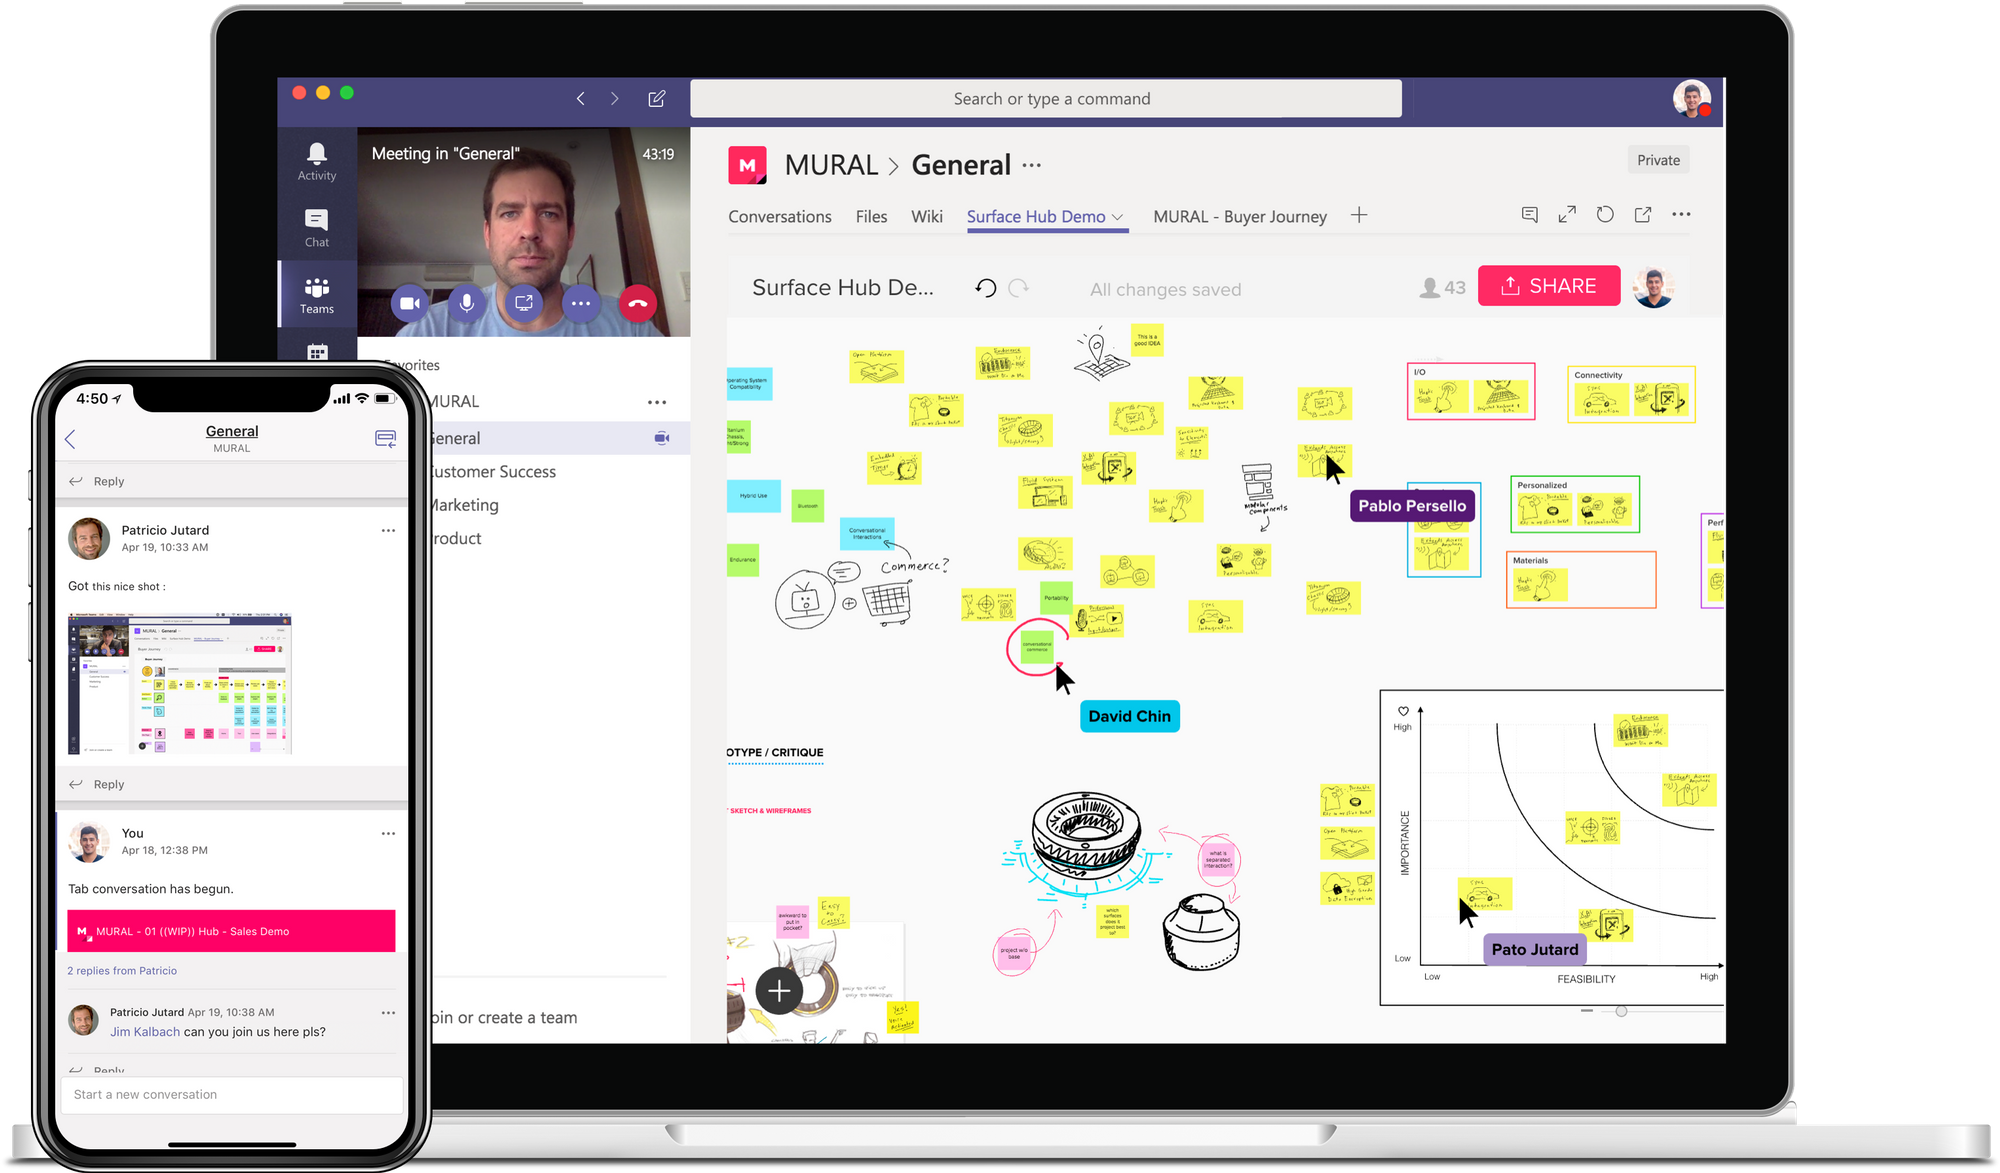 An image showing higher productivity with Microsoft Teams apps designed for remote work.